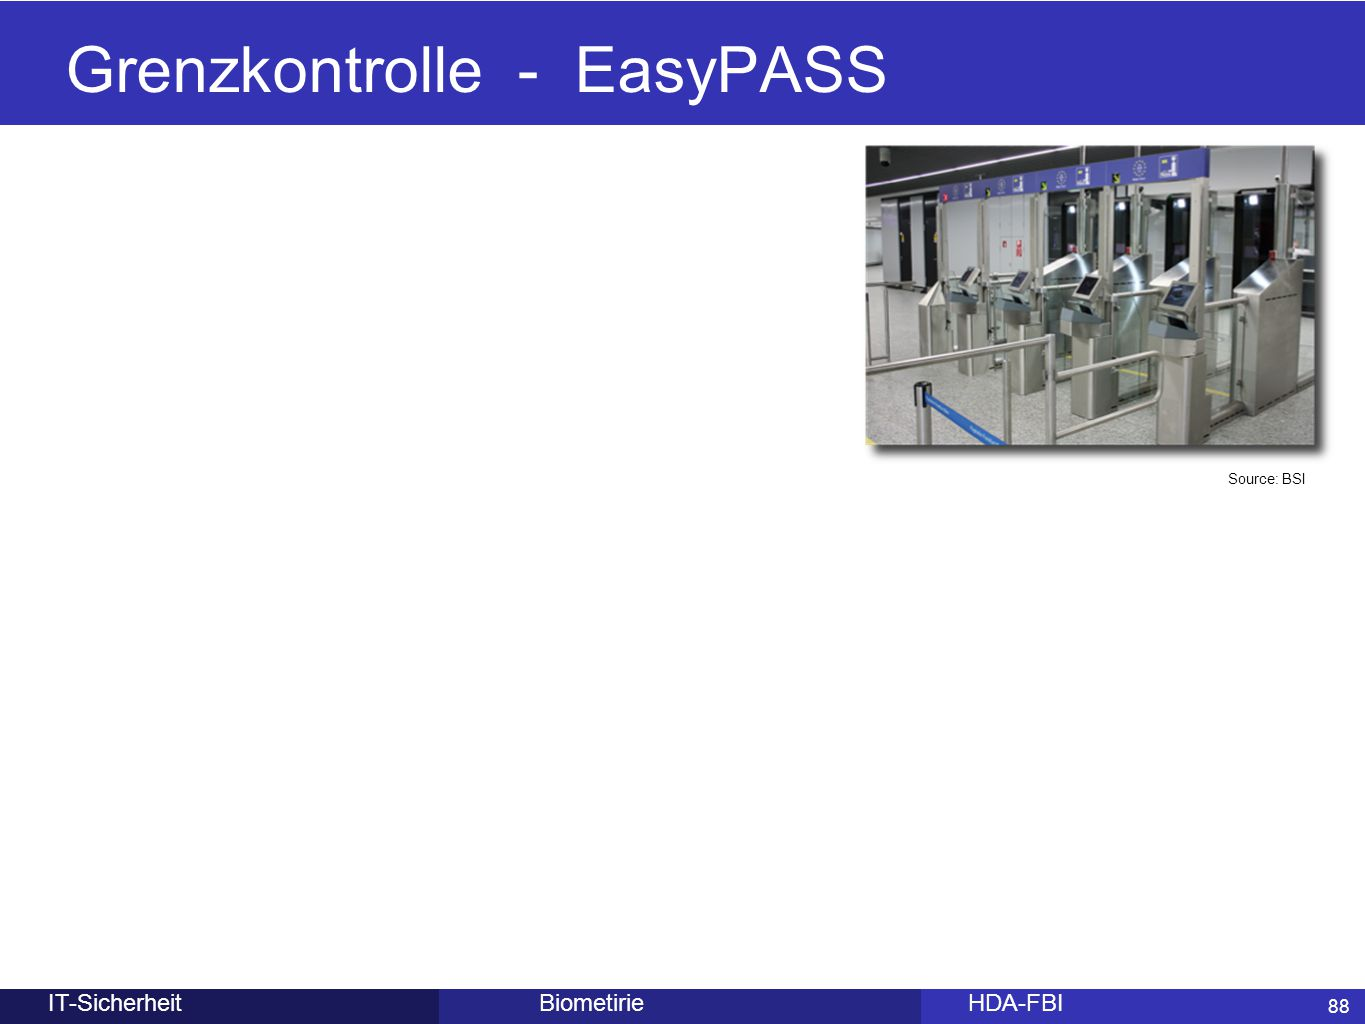 Grenzkontrolle - EasyPASS